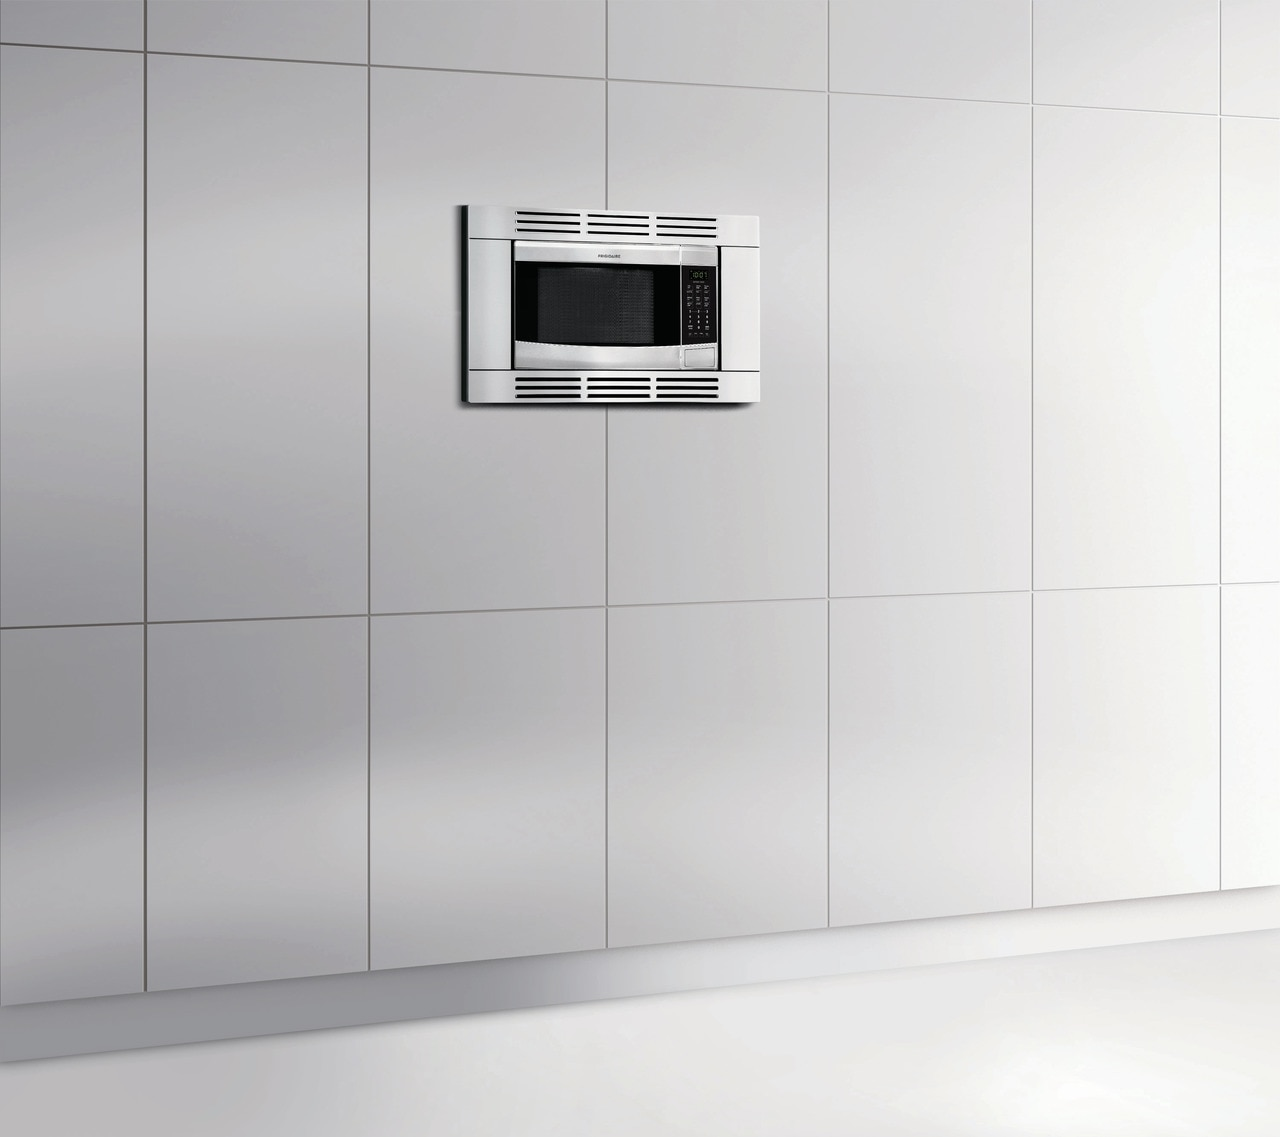 Model: FFMO1611LS | Frigidaire 1.6 Cu. Ft. Built-in Microwave